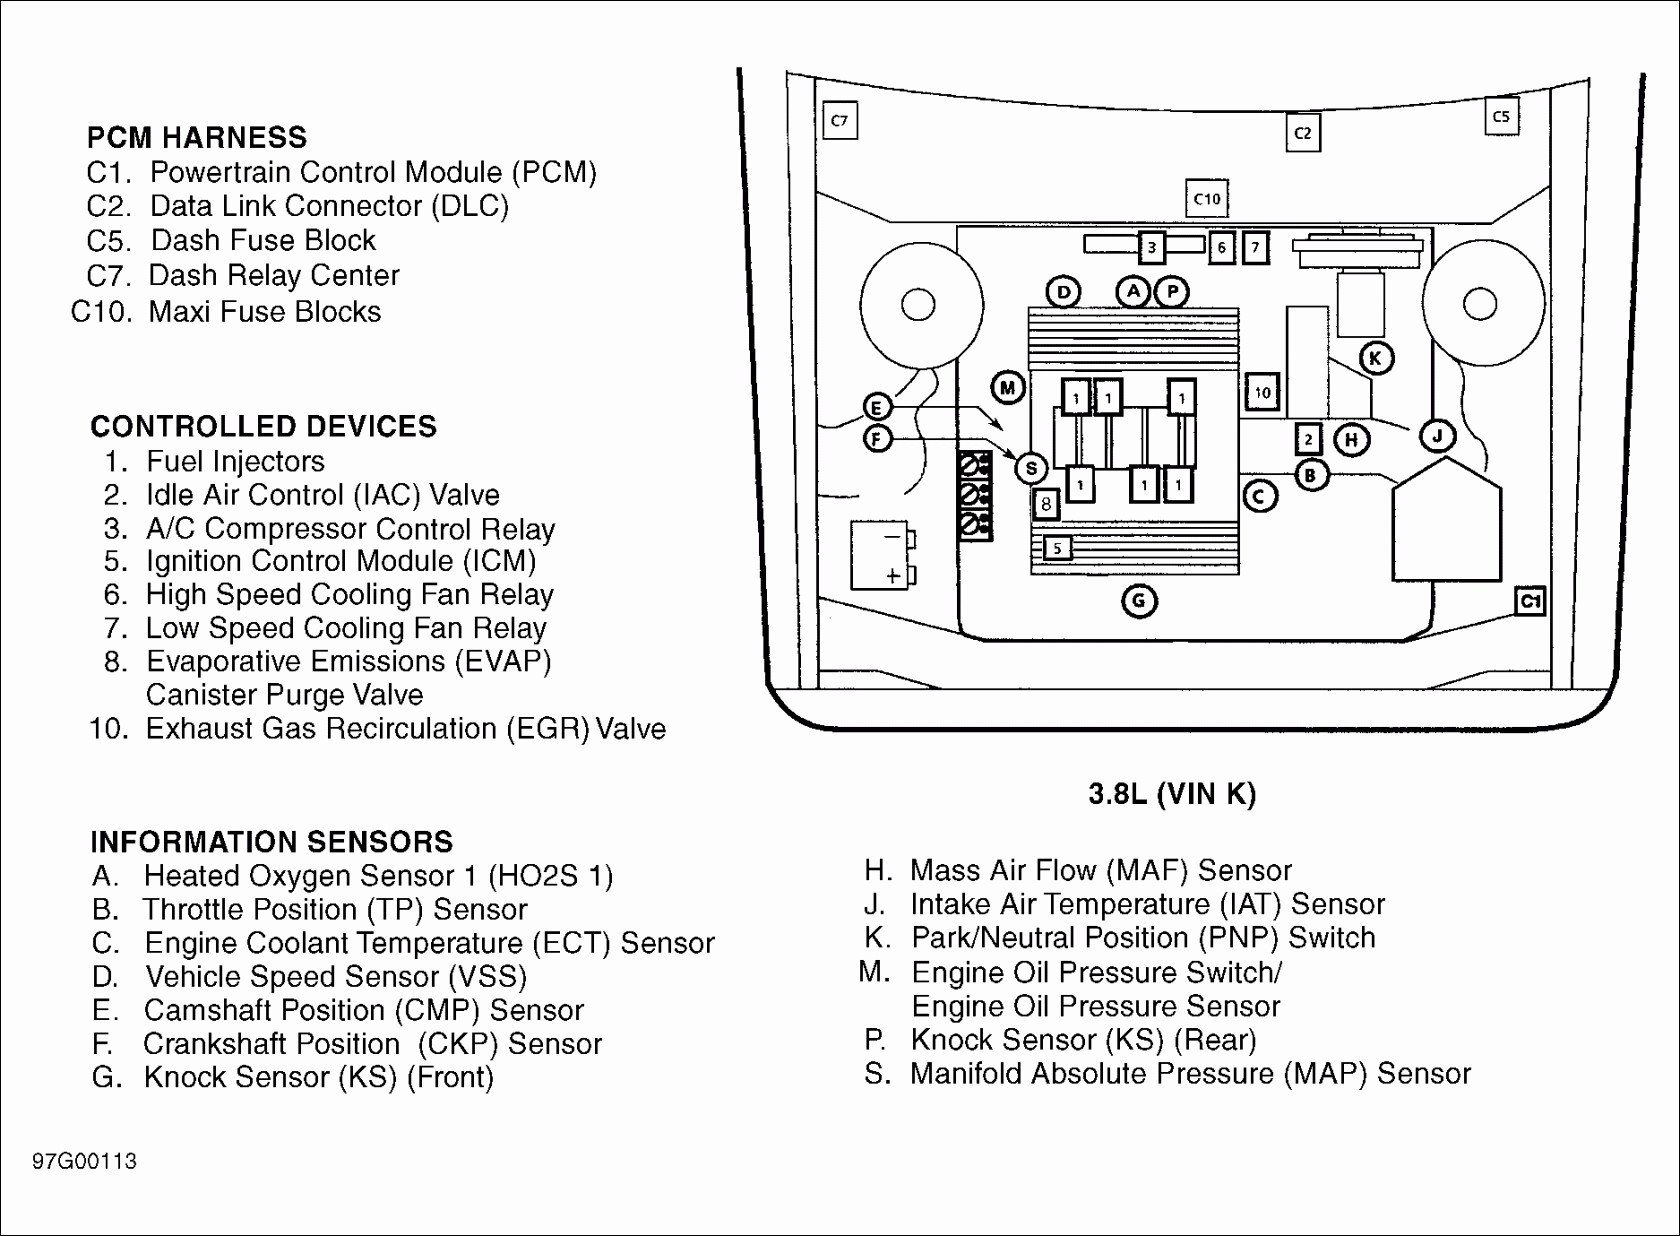 Wiring Diagram Together With Ford Ranger Intake Air Temperature Sensor